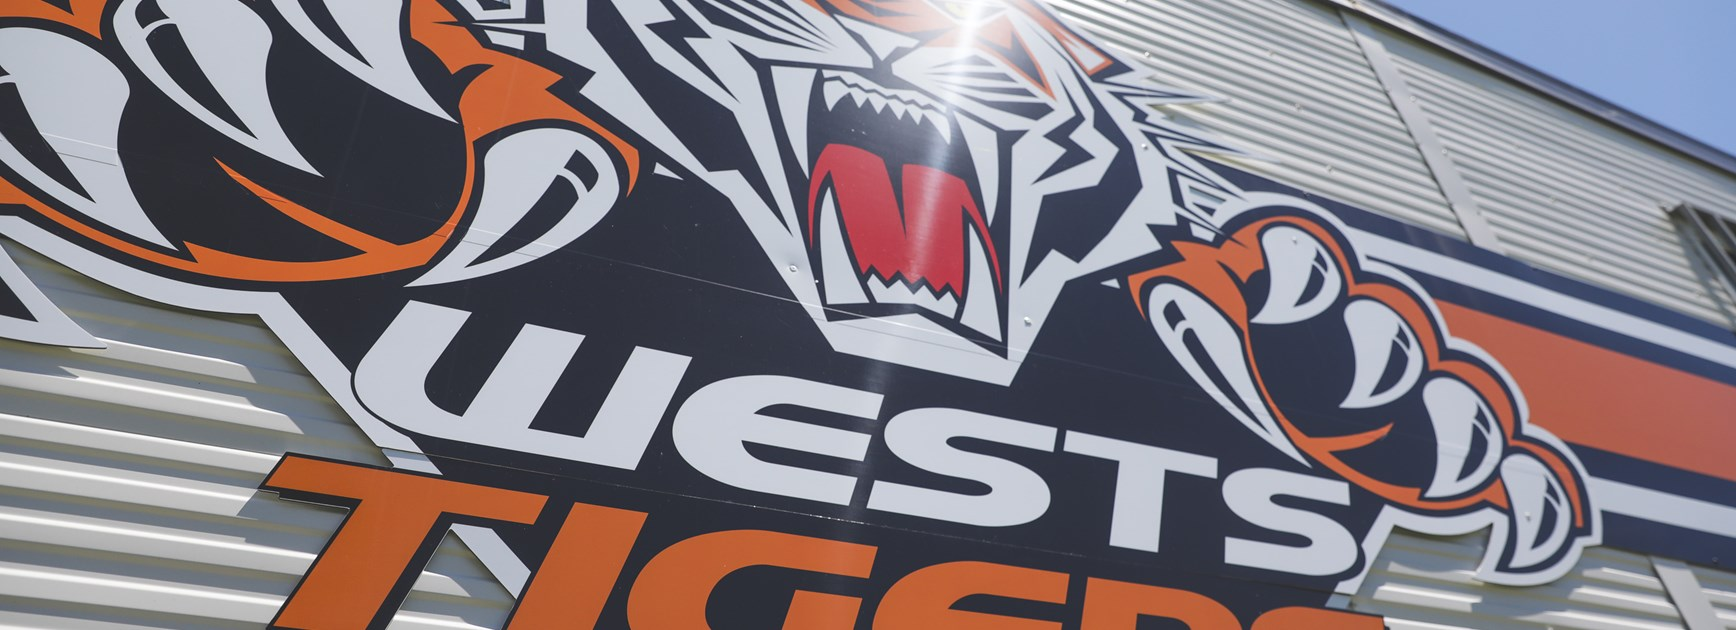 Support Wests Tigers with the Legacy Bequest Club